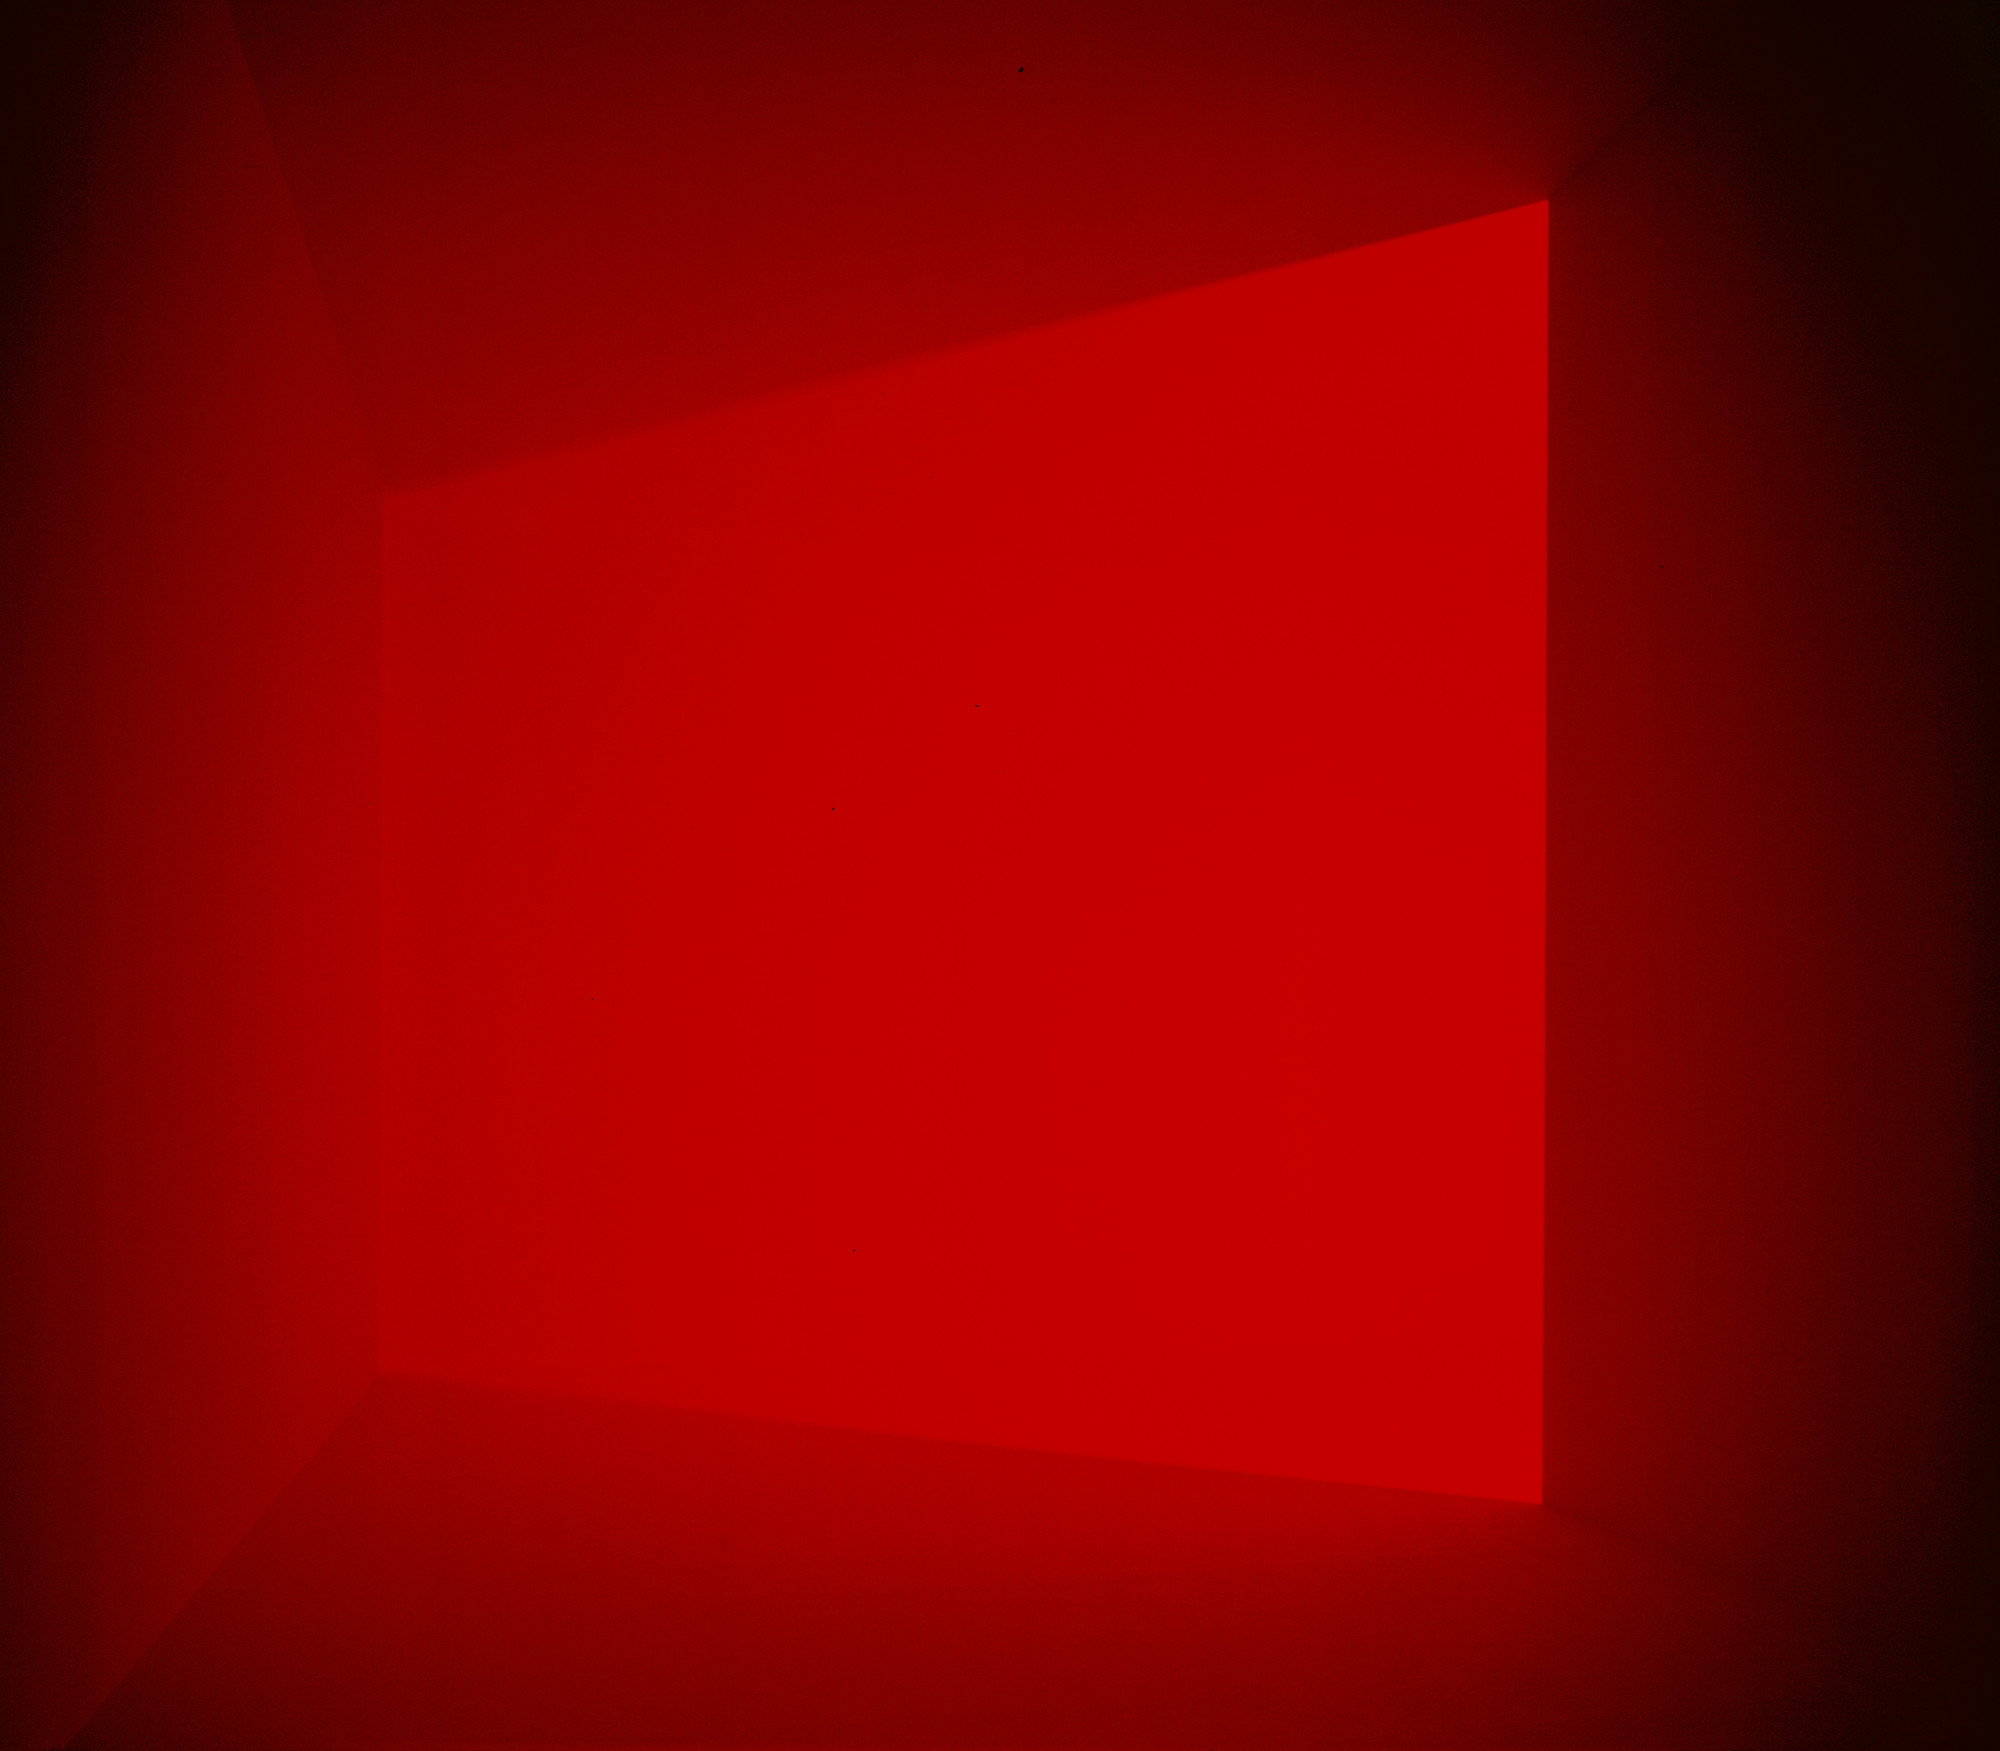 James Turrell. Frontal Passage. 1994